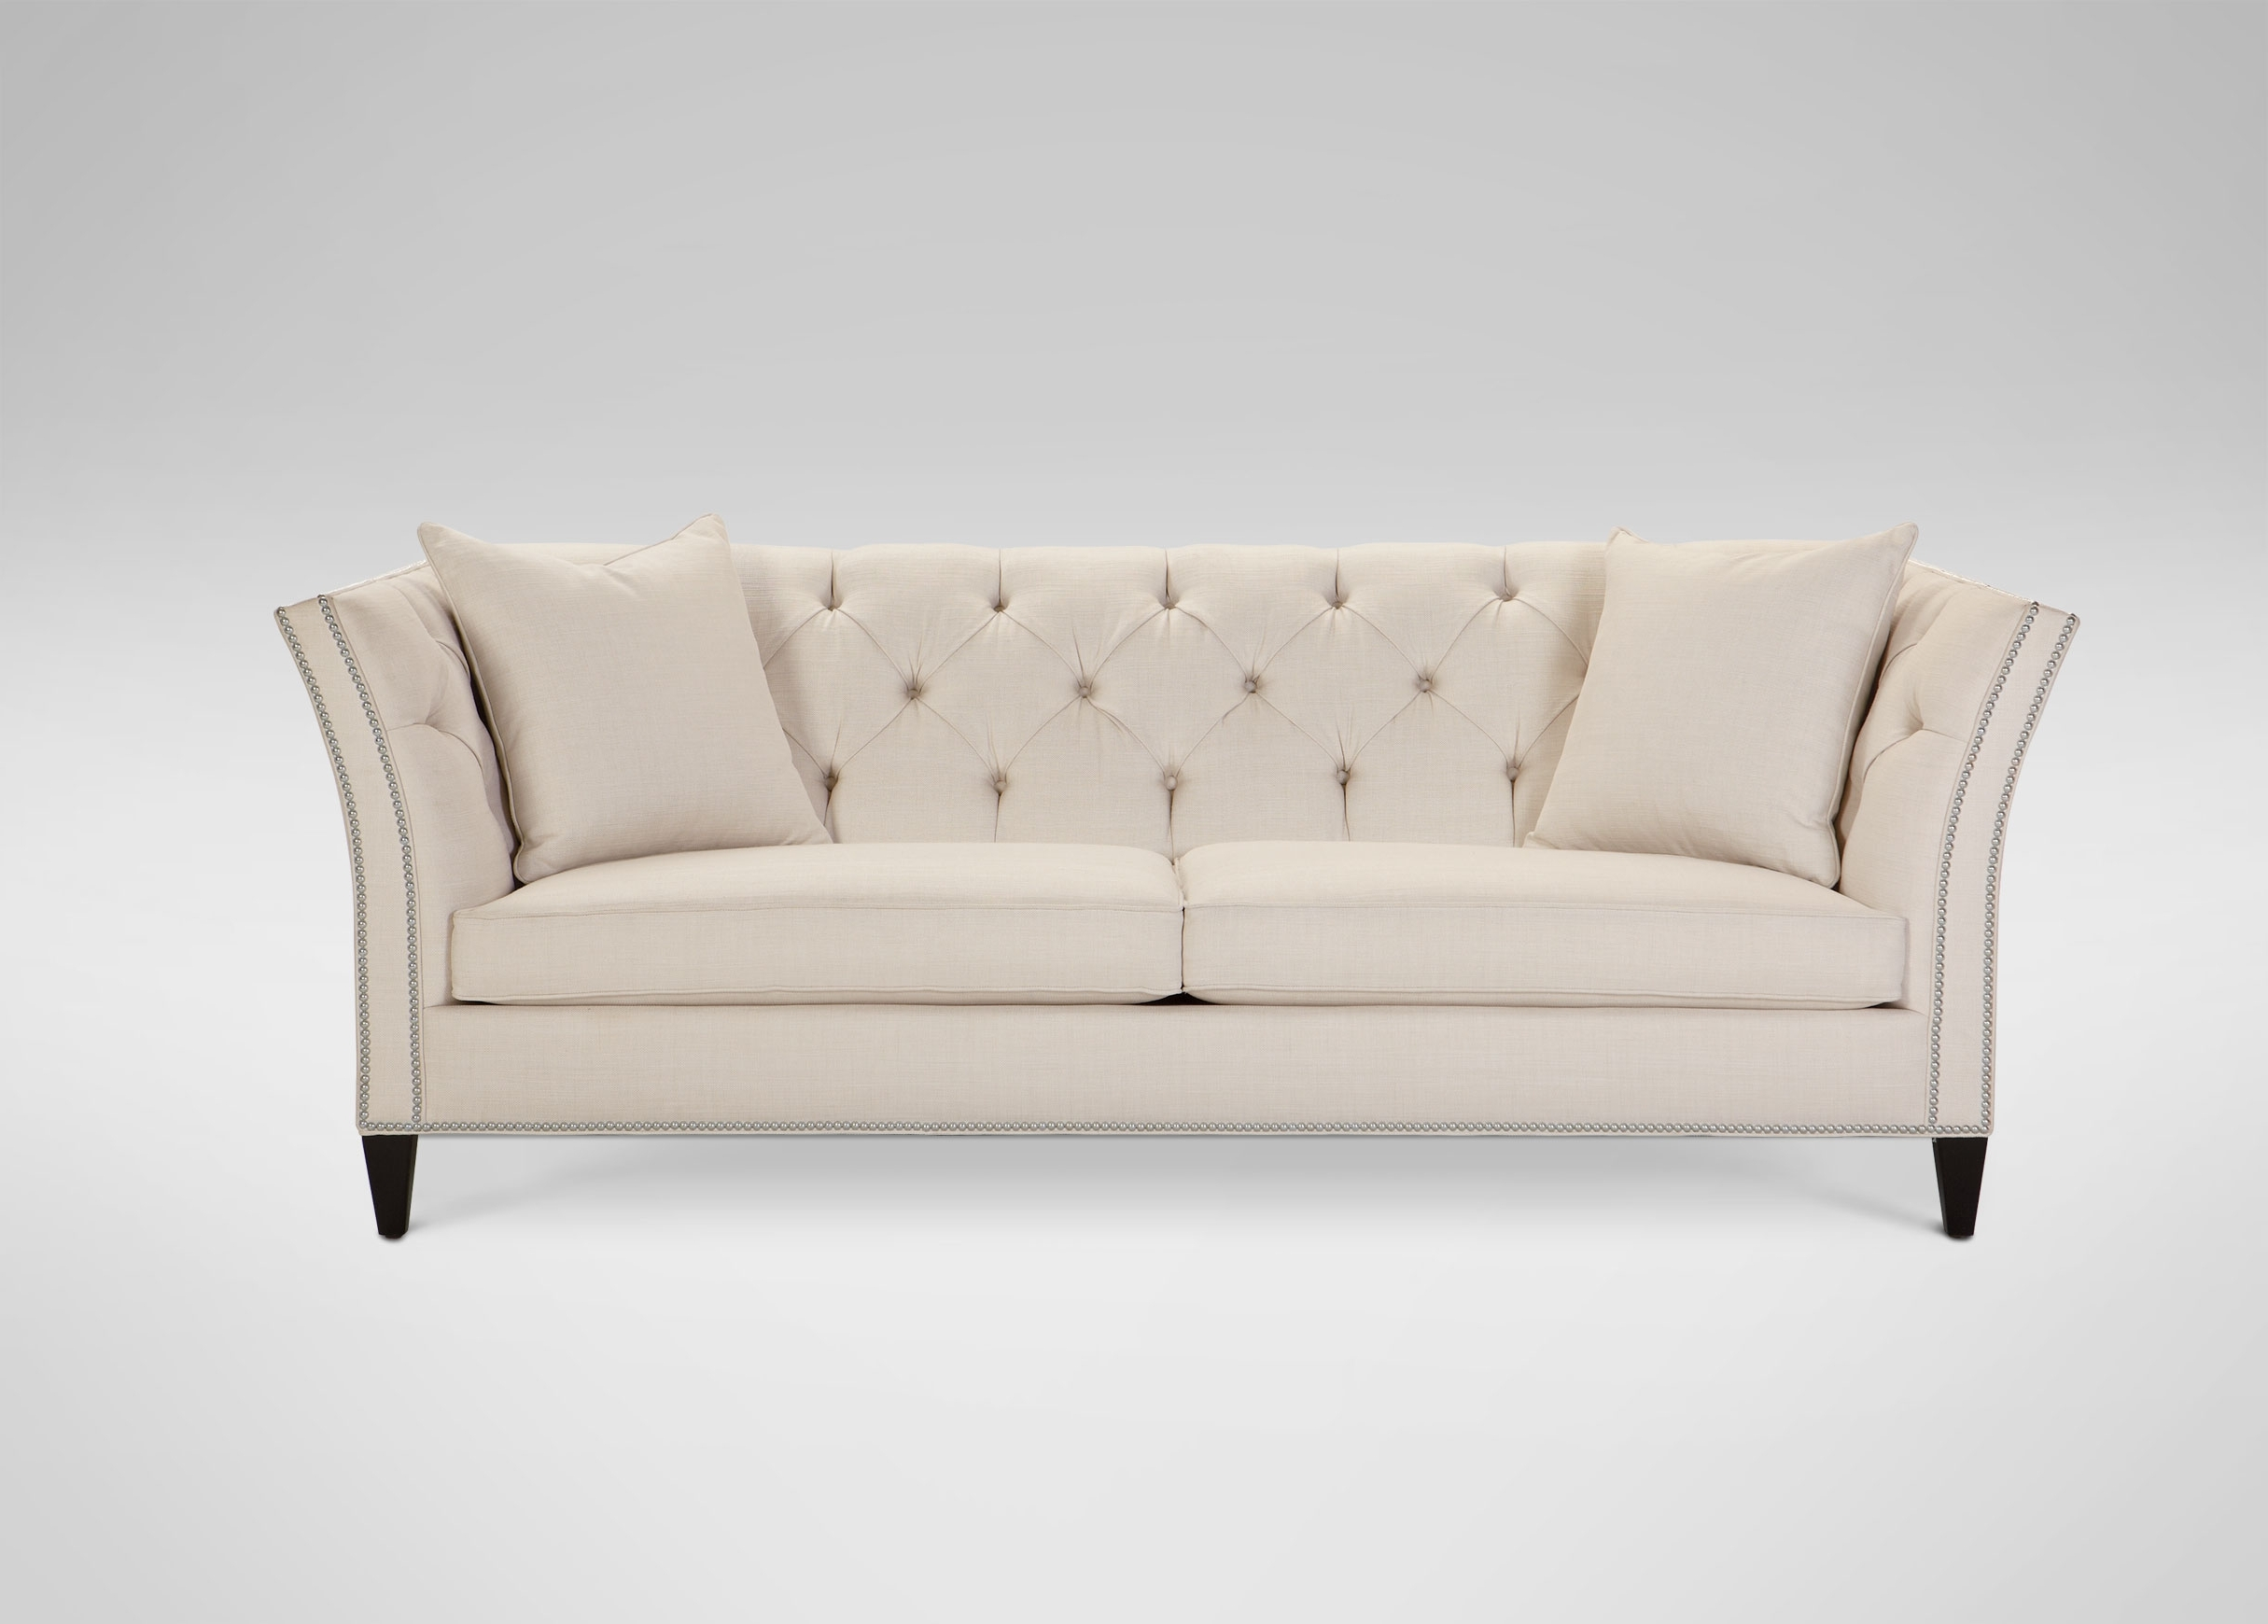 2018 Furniture : Sofa With Chaise Leather Grey Sofa In Family Room Within Joplin Mo Sectional Sofas (View 1 of 20)